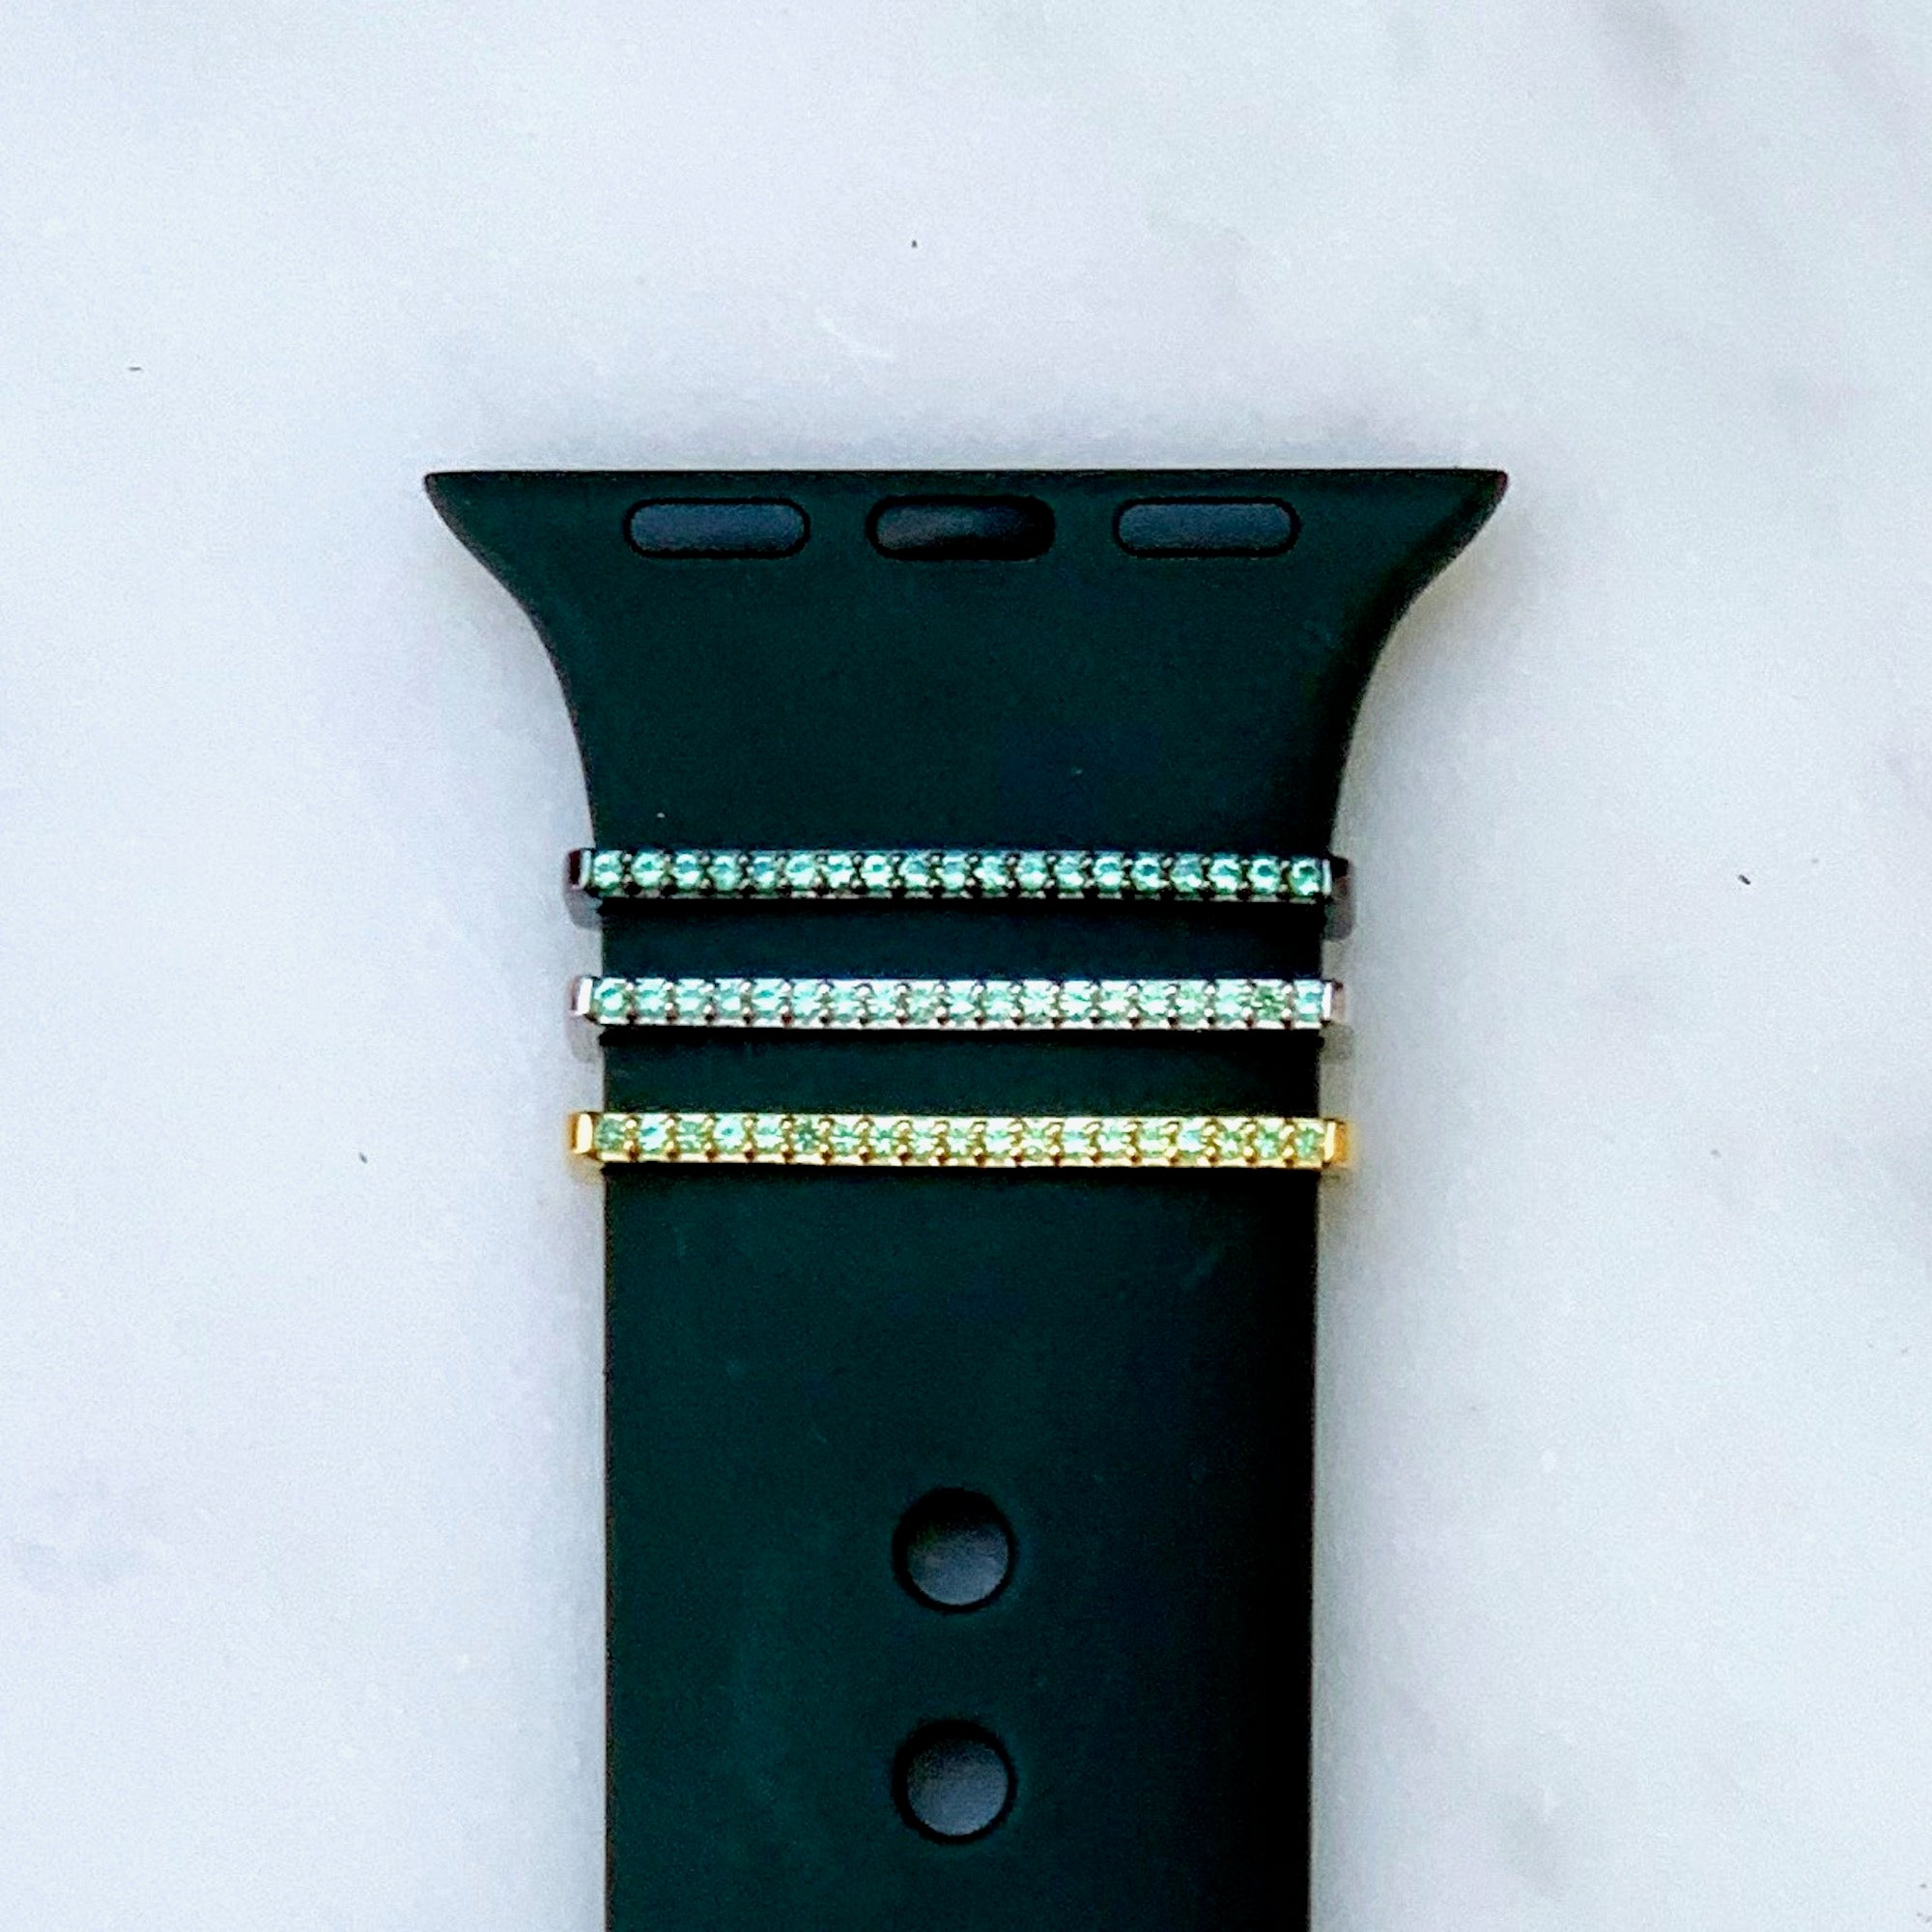 bytten tiny emerald green crystal ring for Apple Watch Sport bands, Fitbit Versa, Fitbit Sense, Classic and Infinity bands